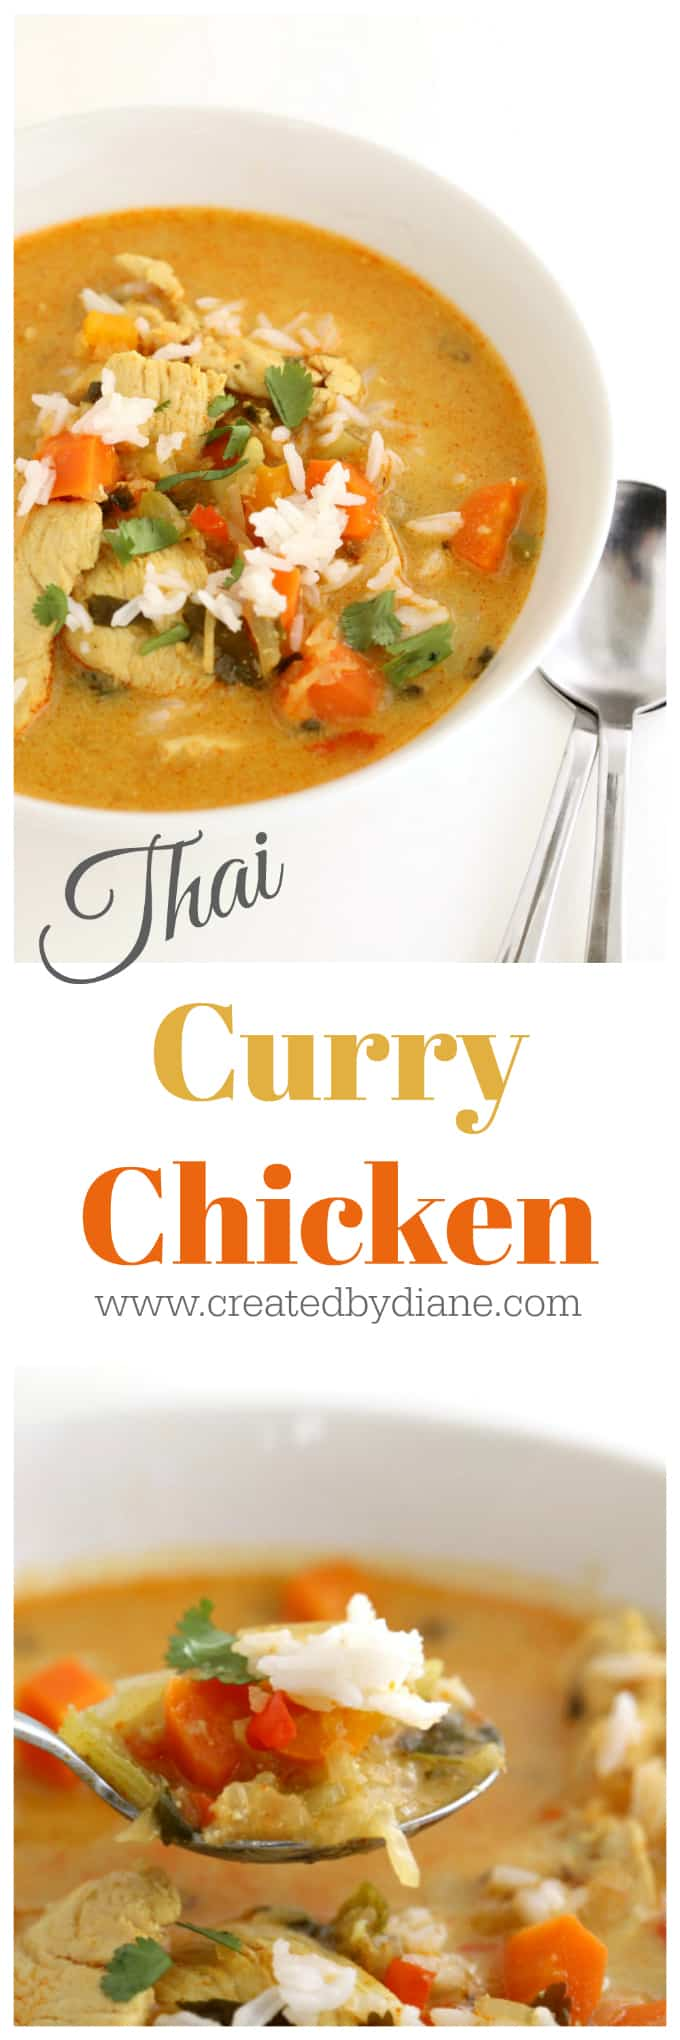 Thai Curry Chicken www.createdbydiane.com